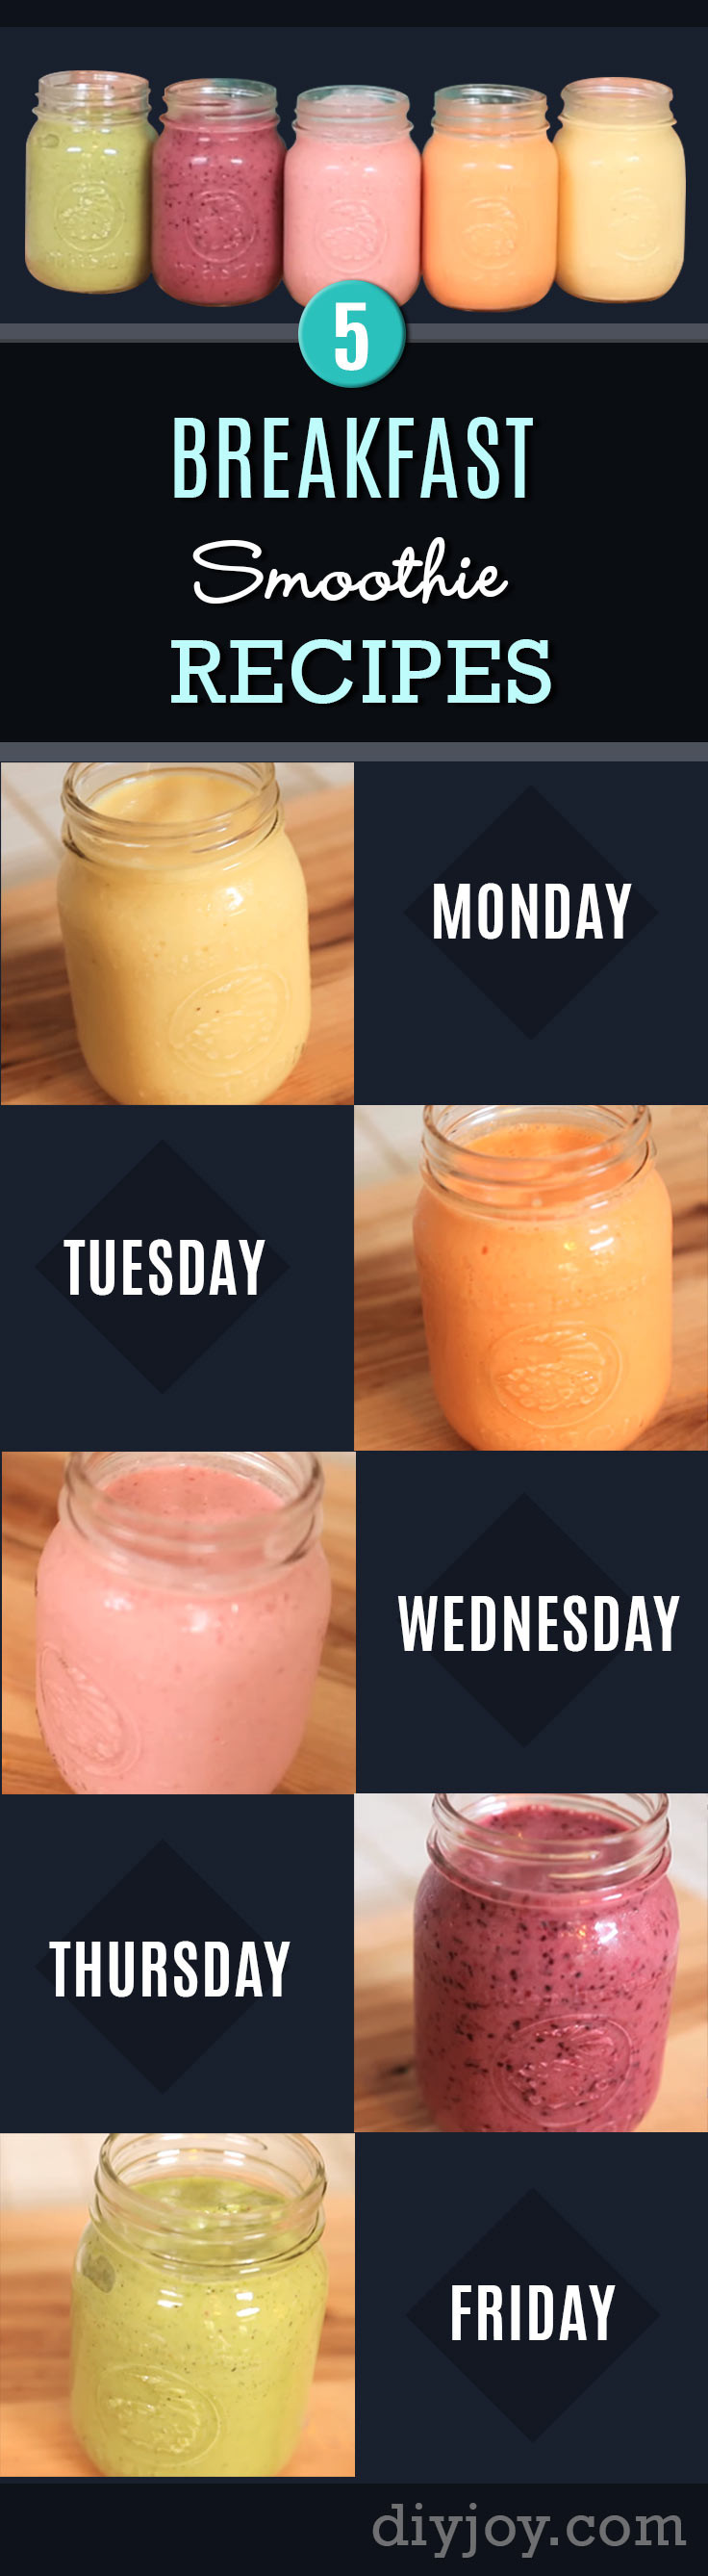 Breakfast Smoothie Recipes  Monday to Friday 5 Ultimate Breakfast Smoothie Recipes